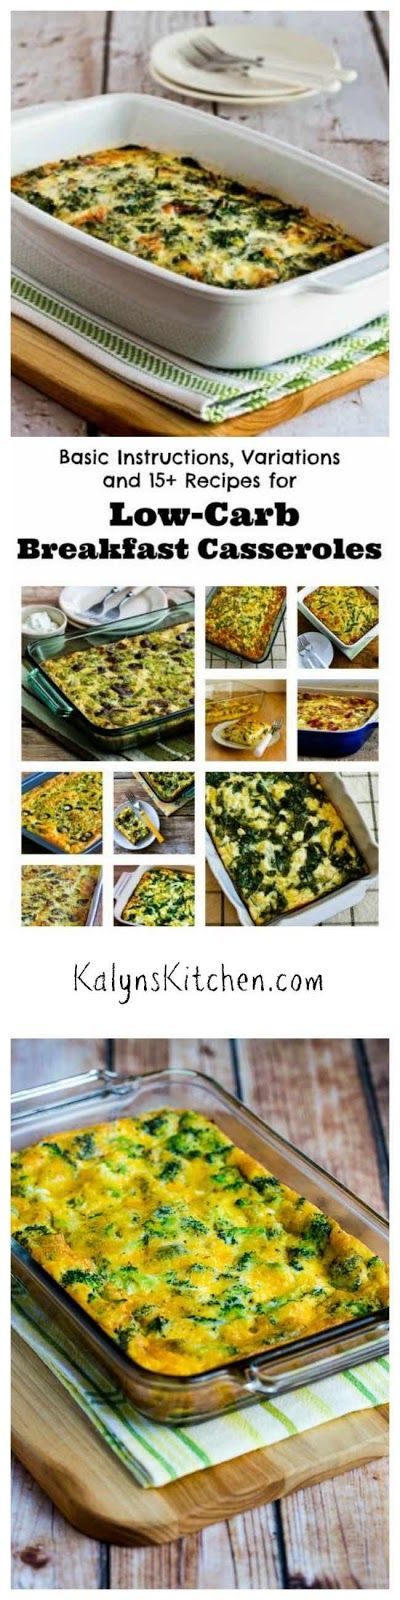 I make a breakfast casserole nearly every weekend and eat it all week! Here are the Basic Instructions and Recipes for Low-Carb Breakfast Casseroles that I use; the variations are endless! [found on KalynsKitchen.com]